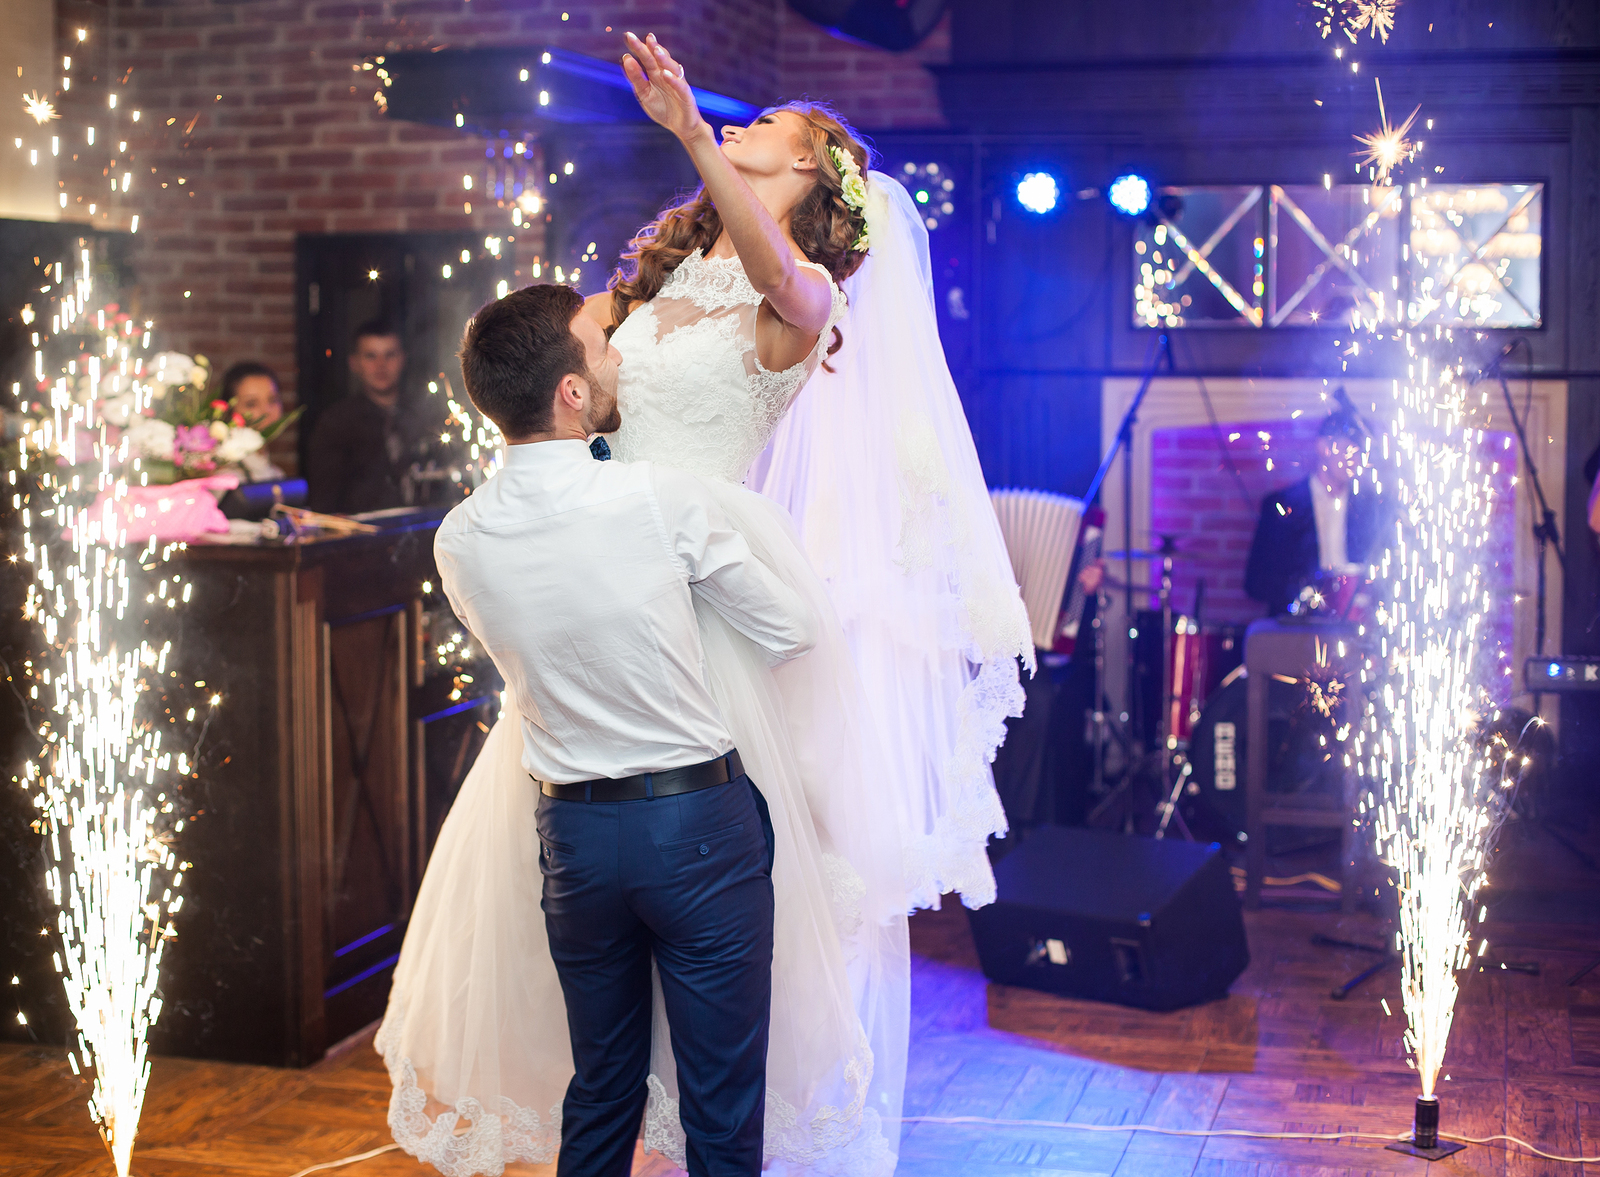 Beautiful newlywed couple first dance at wedding reception surrounded by smoke and blue lights amd sparks